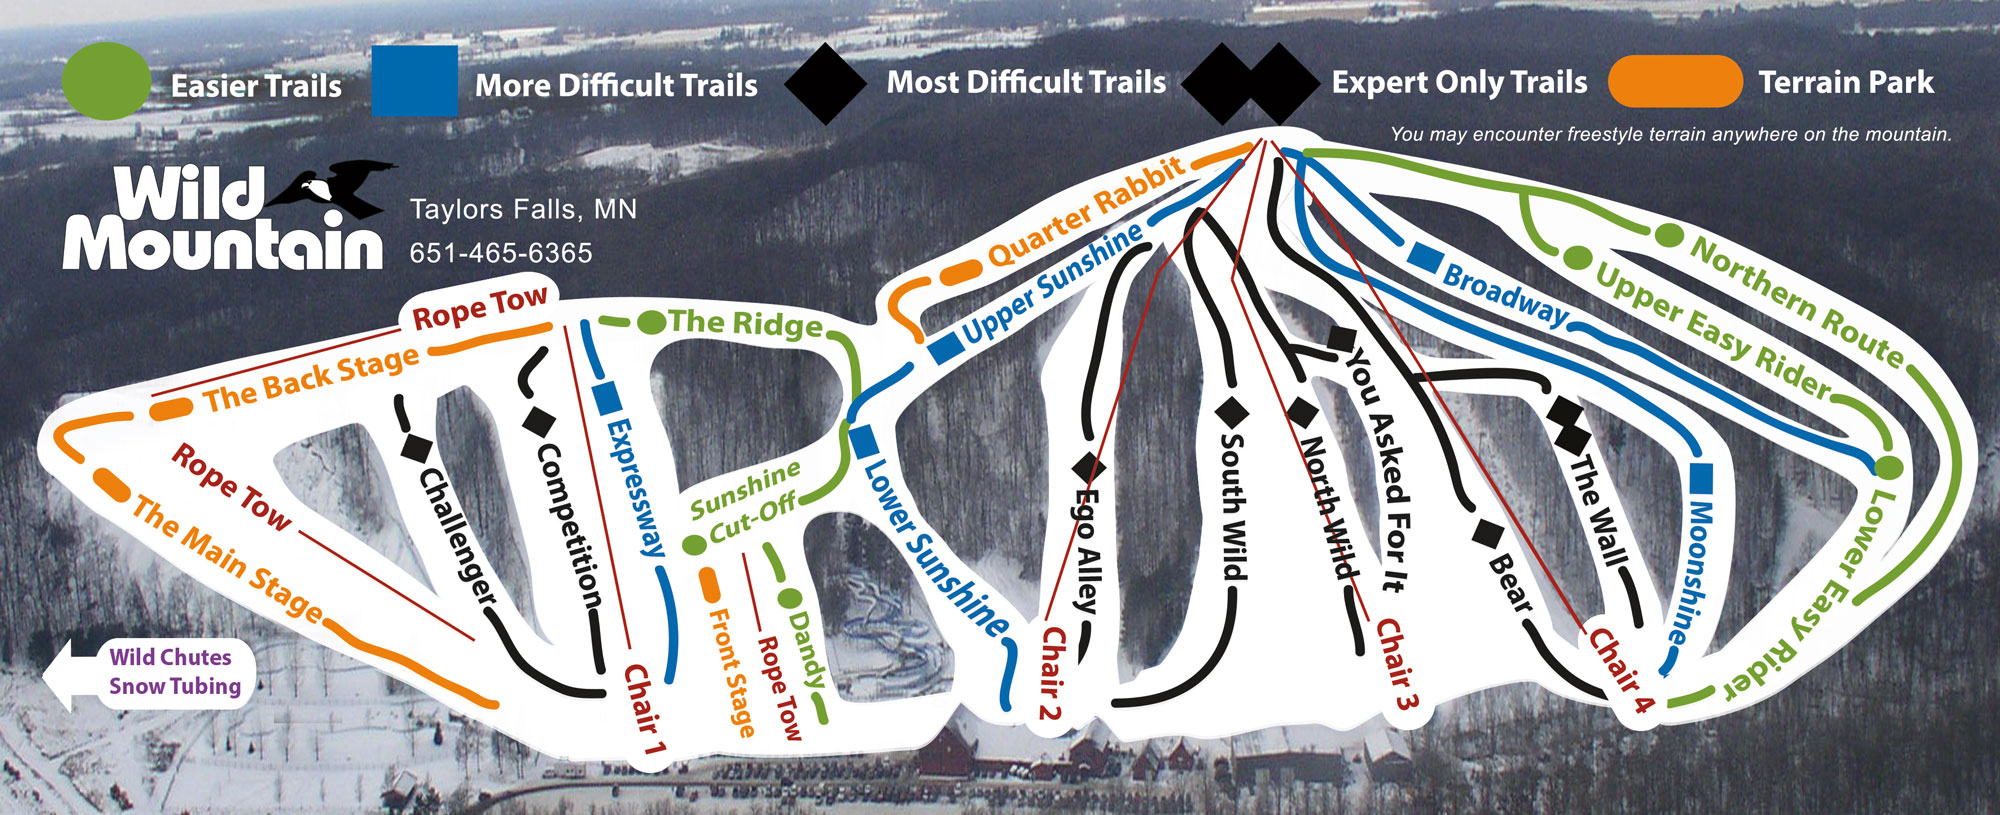 Trail Map 2017